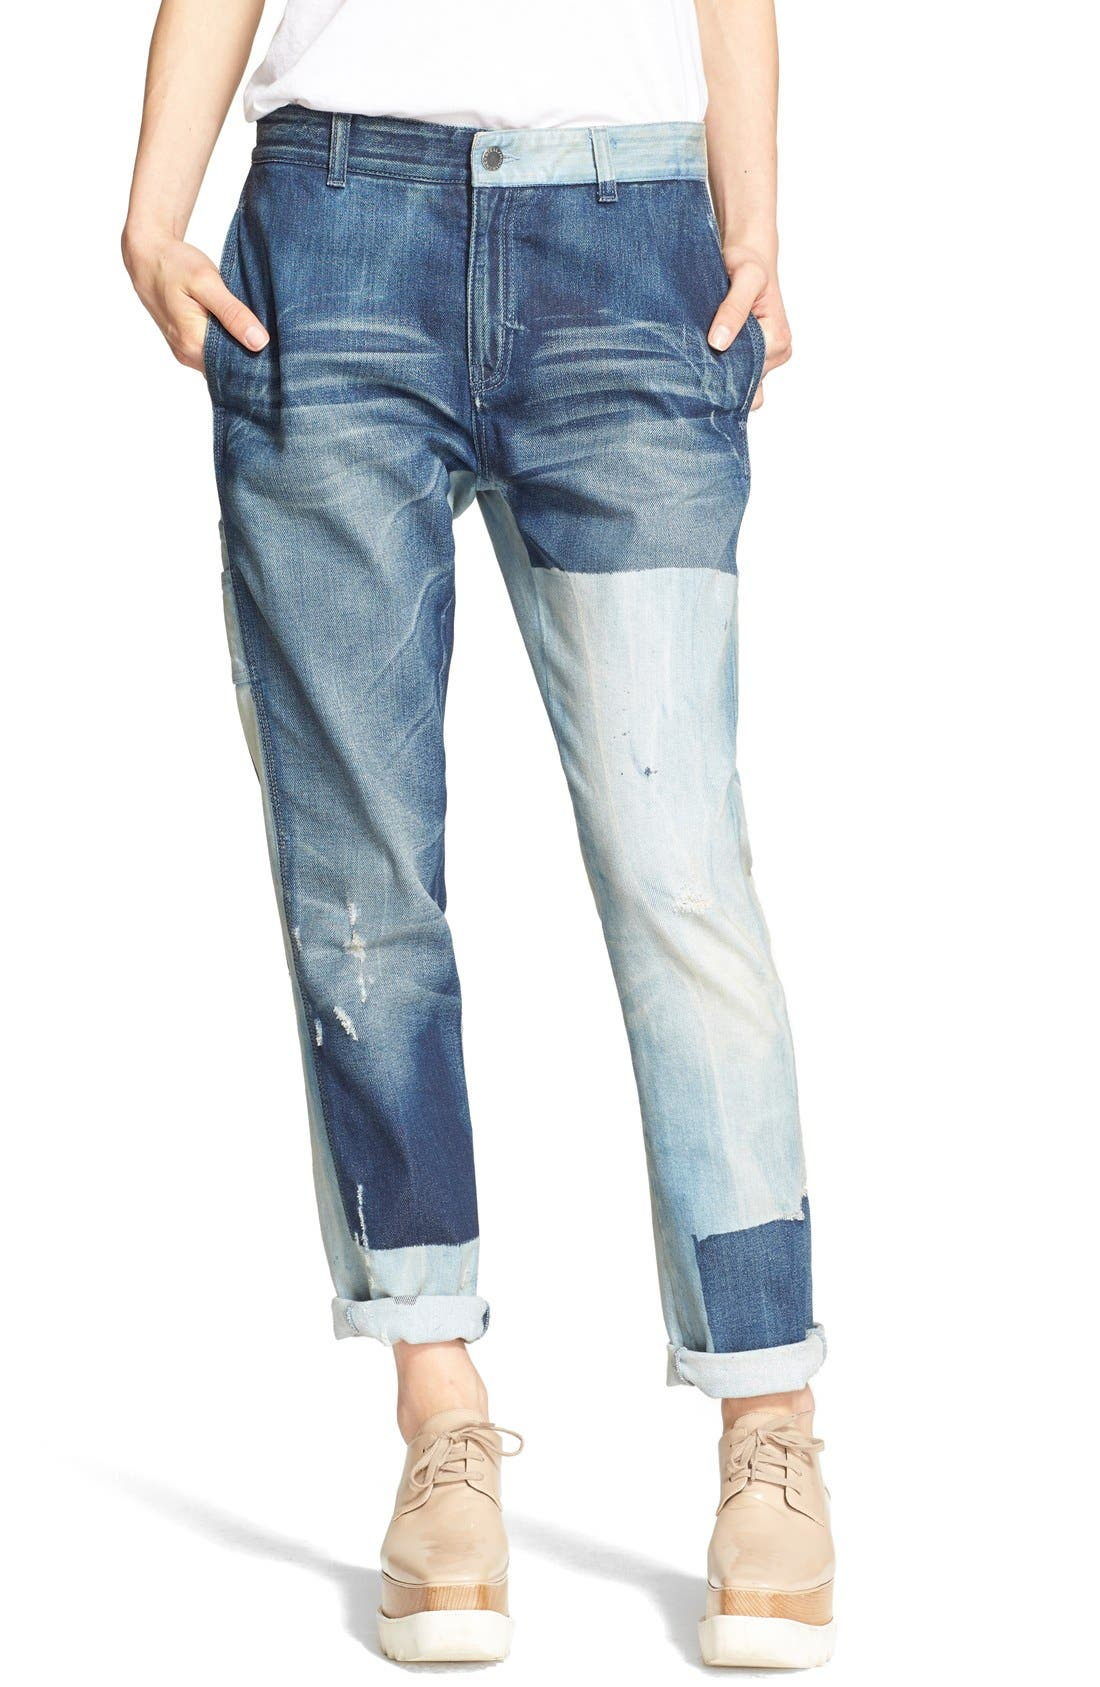 STELLA MCCARTNEY 'The Patchwork' Boyfriend Jeans, Main, color, 476